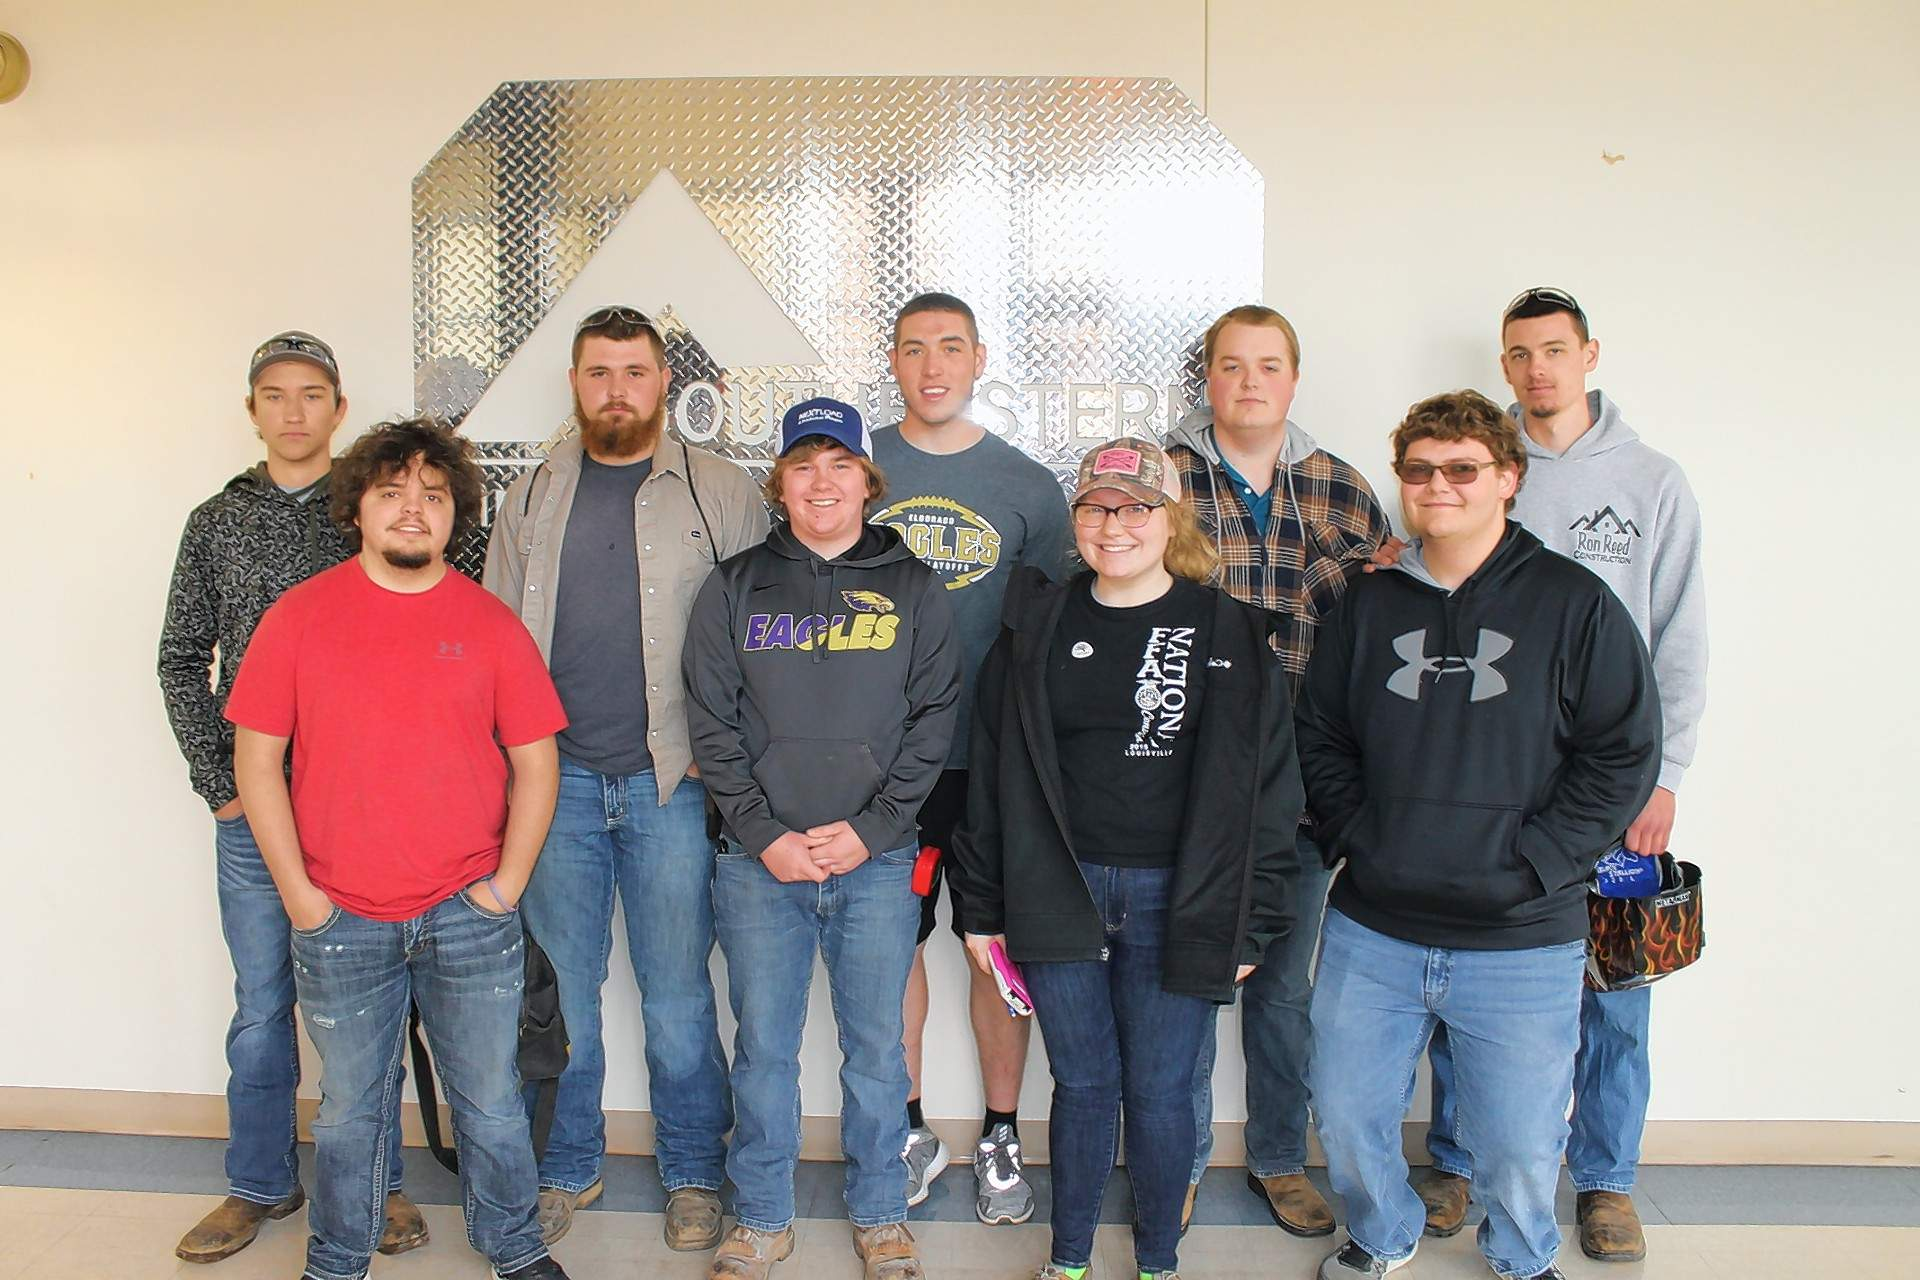 Eldorado High School's FFA Chapter placed second team overall at the 2018 FFA Section 25 Ag Mechanics Competition at Southeastern Illinois College. Pictured are (not in order): Ely Boulds, Jeremy Boulds, Gannon Mahoney, Braidon Minor, Garrik Quertermous, Lucas Rider, Chaitlyn Stanley, Jacob Traxler and Kyle Worley.